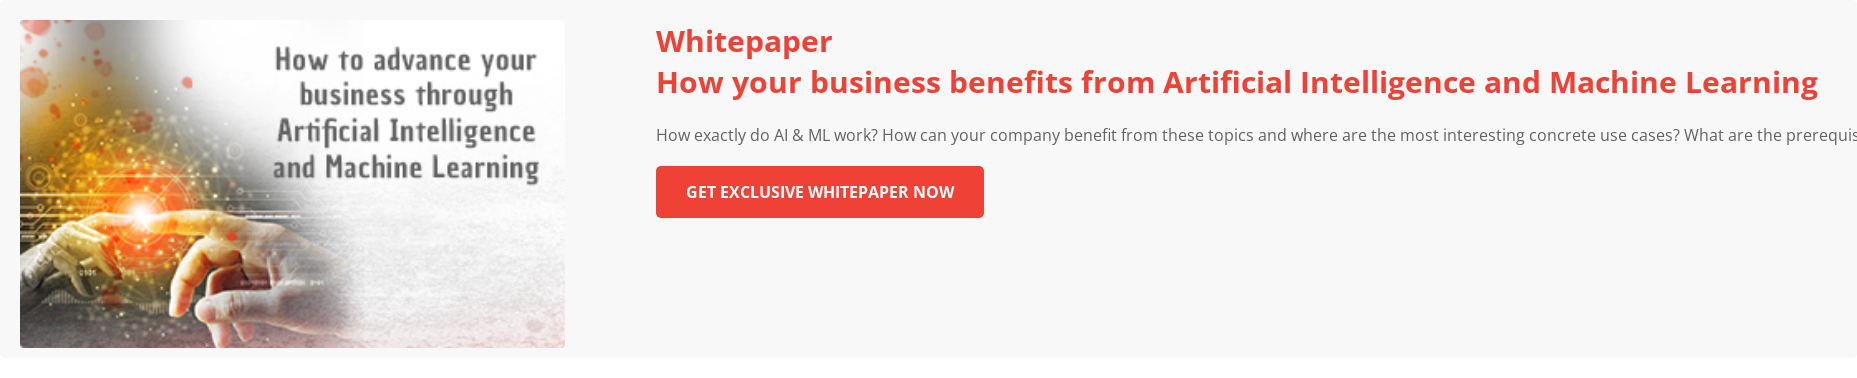 How your business benefits from Artificial Intelligence and Machine Learning How exactly do AI & ML work? How can your company benefit from these topics  and where are the most interesting concrete use cases? What are the  prerequisites and what has to be considered to implement successful projects in  this area? Download Whitepaper